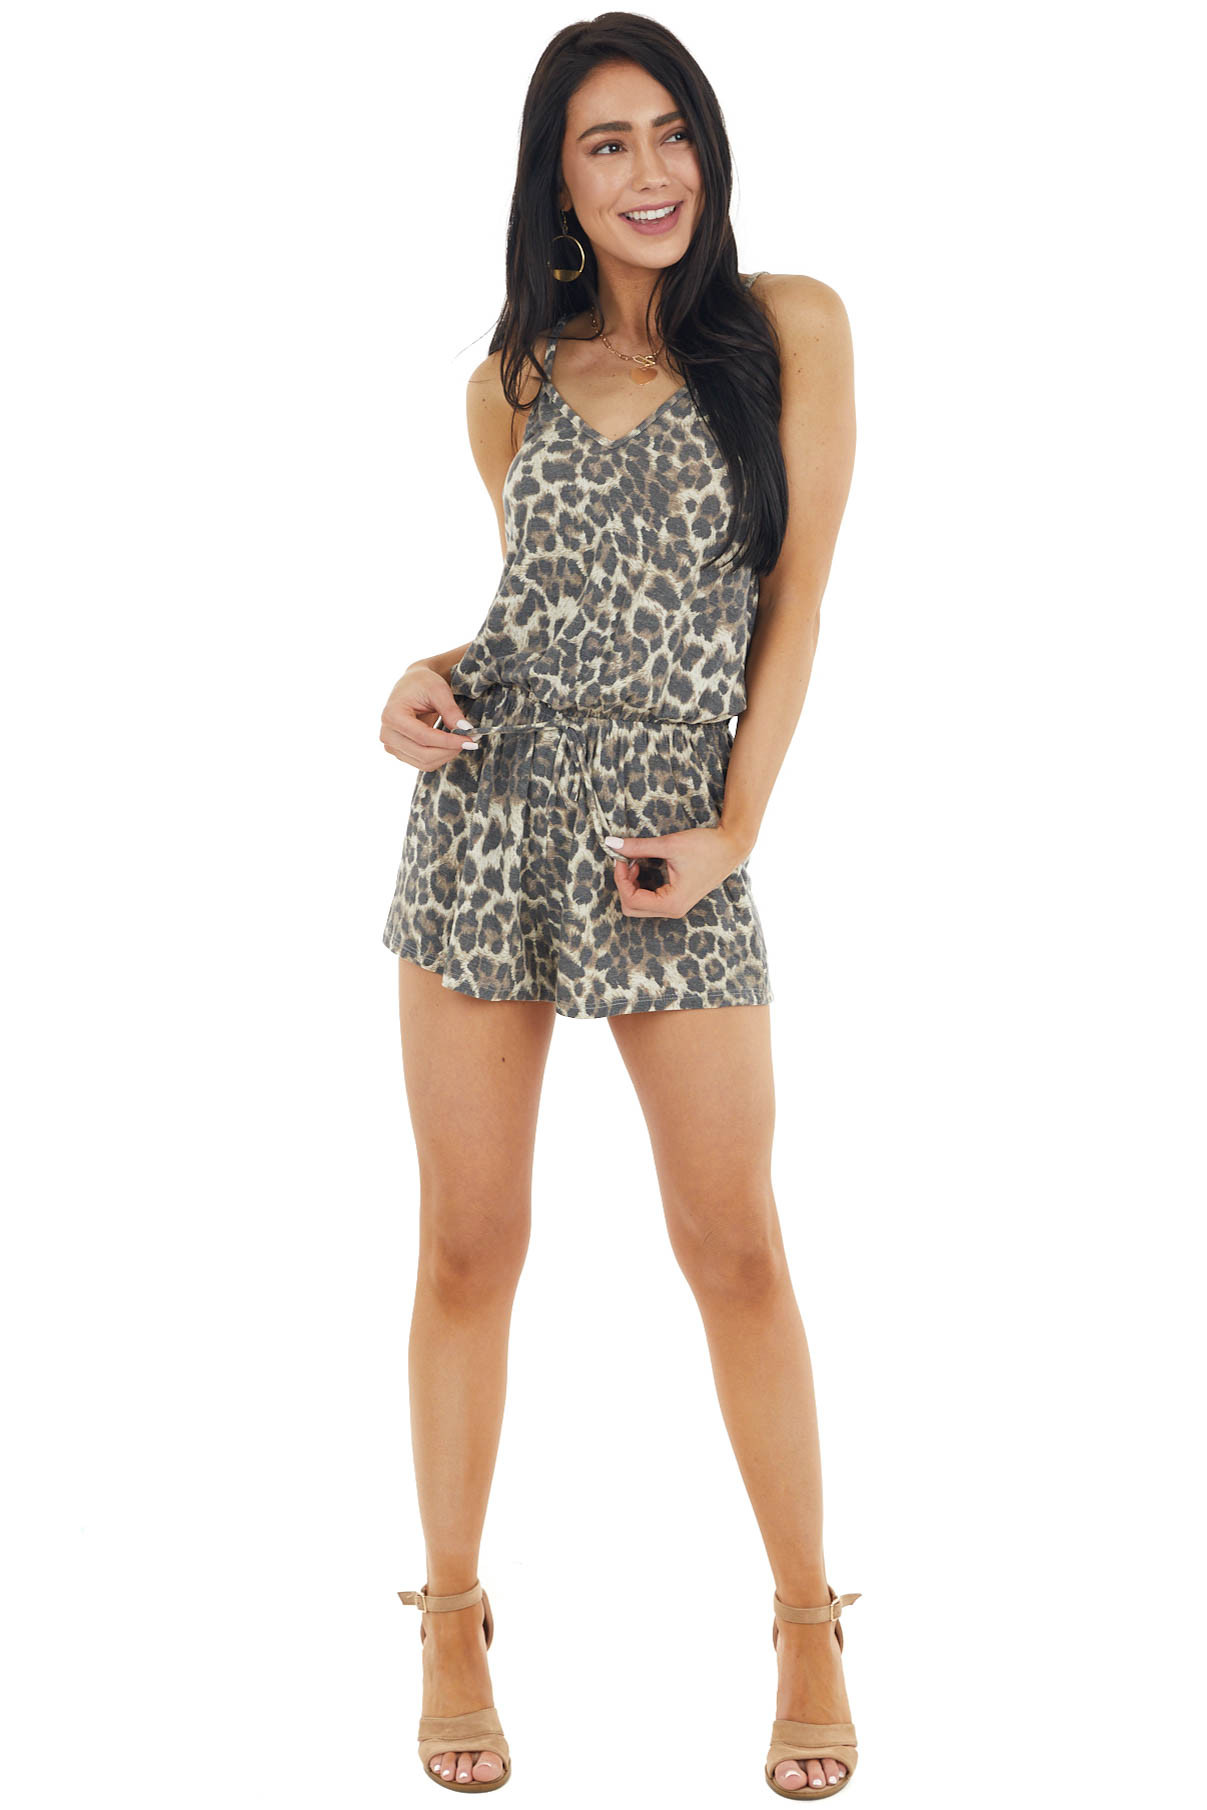 Oatmeal Leopard Sleeveless Romper with Criss Cross Back